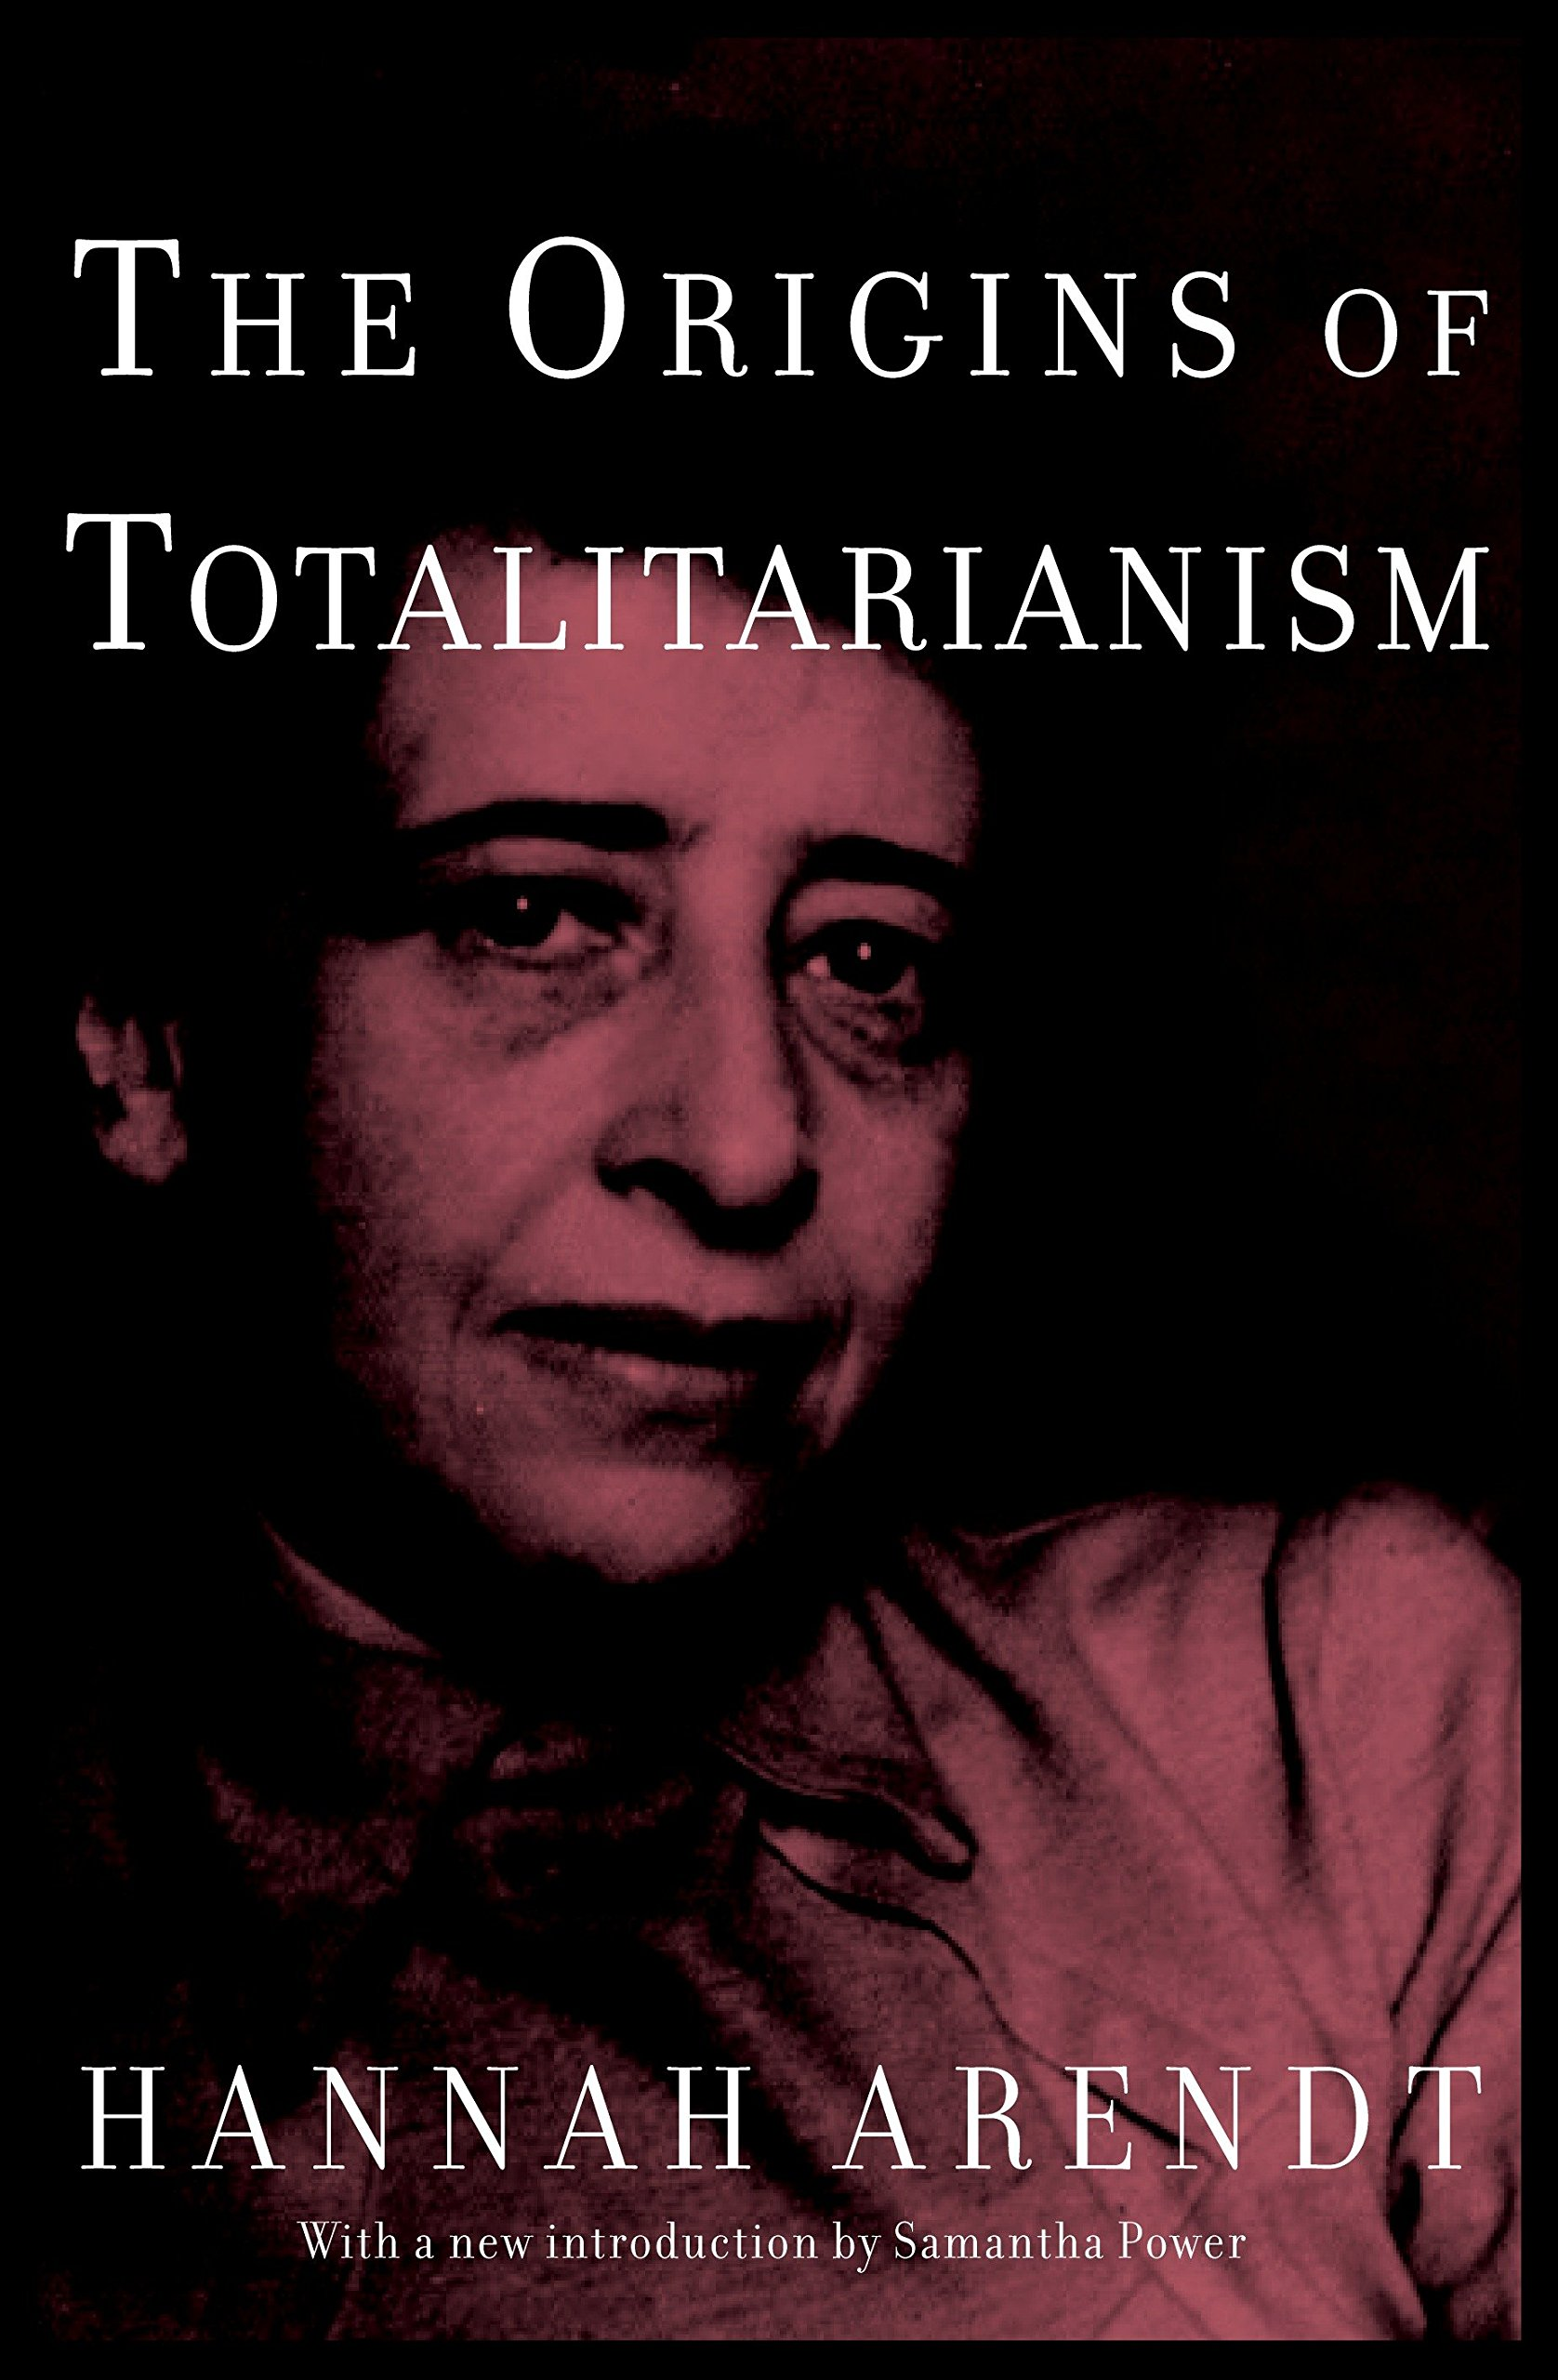 Amazon.fr - The Origins of Totalitarianism: Introduction by Samantha Power  - Arendt, Hannah - Livres